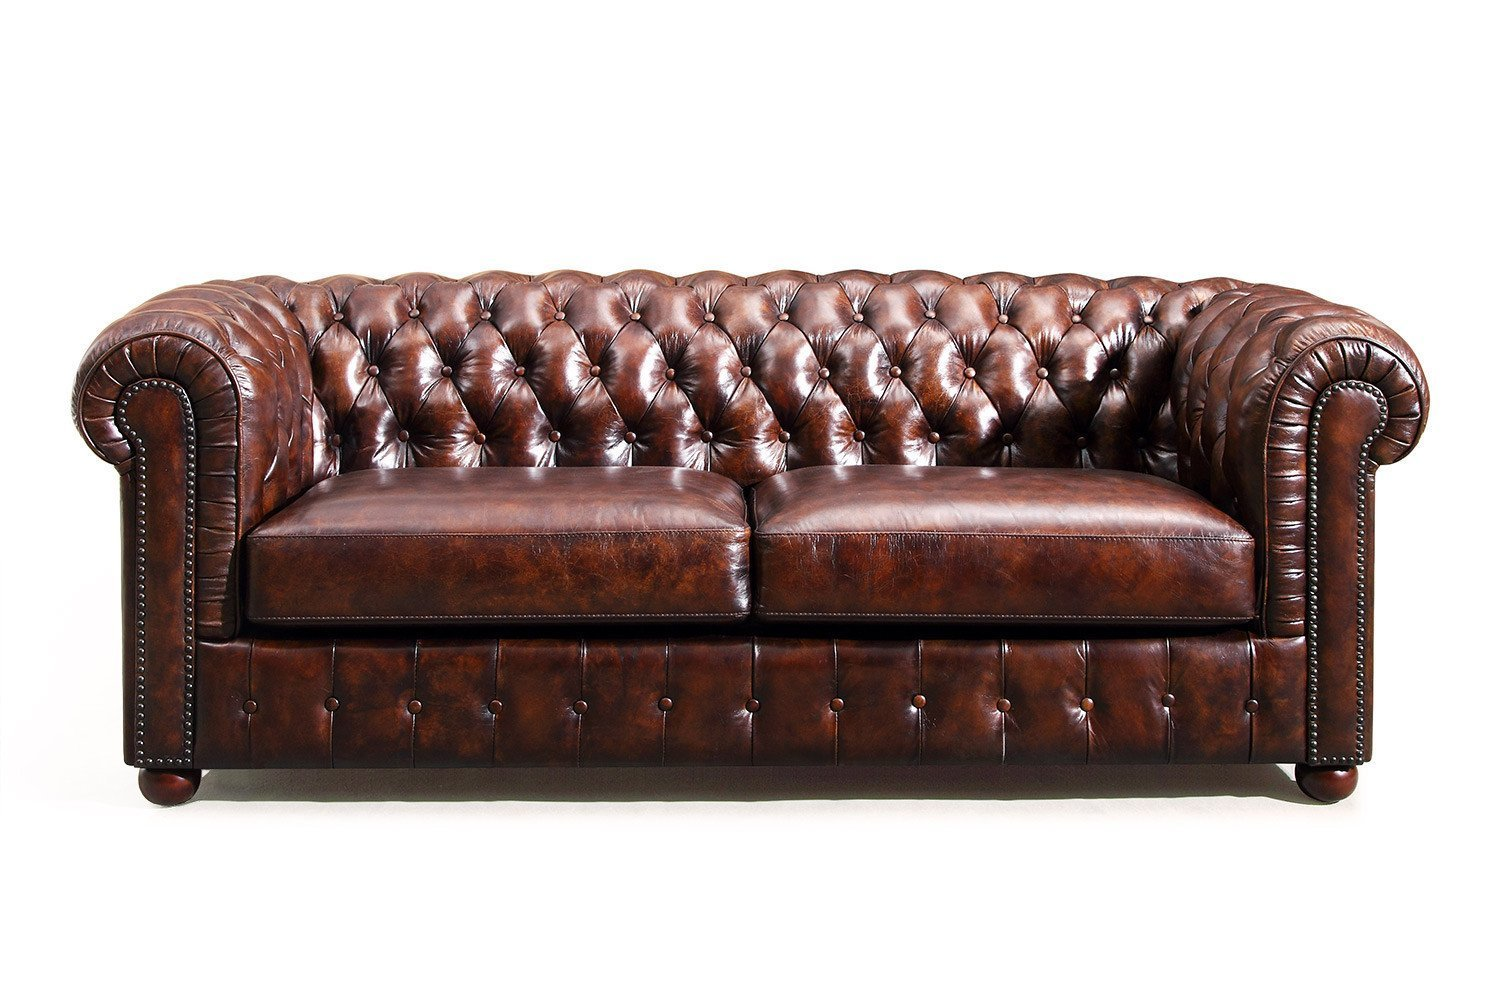 original chesterfield leather sofa home furniture design. Black Bedroom Furniture Sets. Home Design Ideas